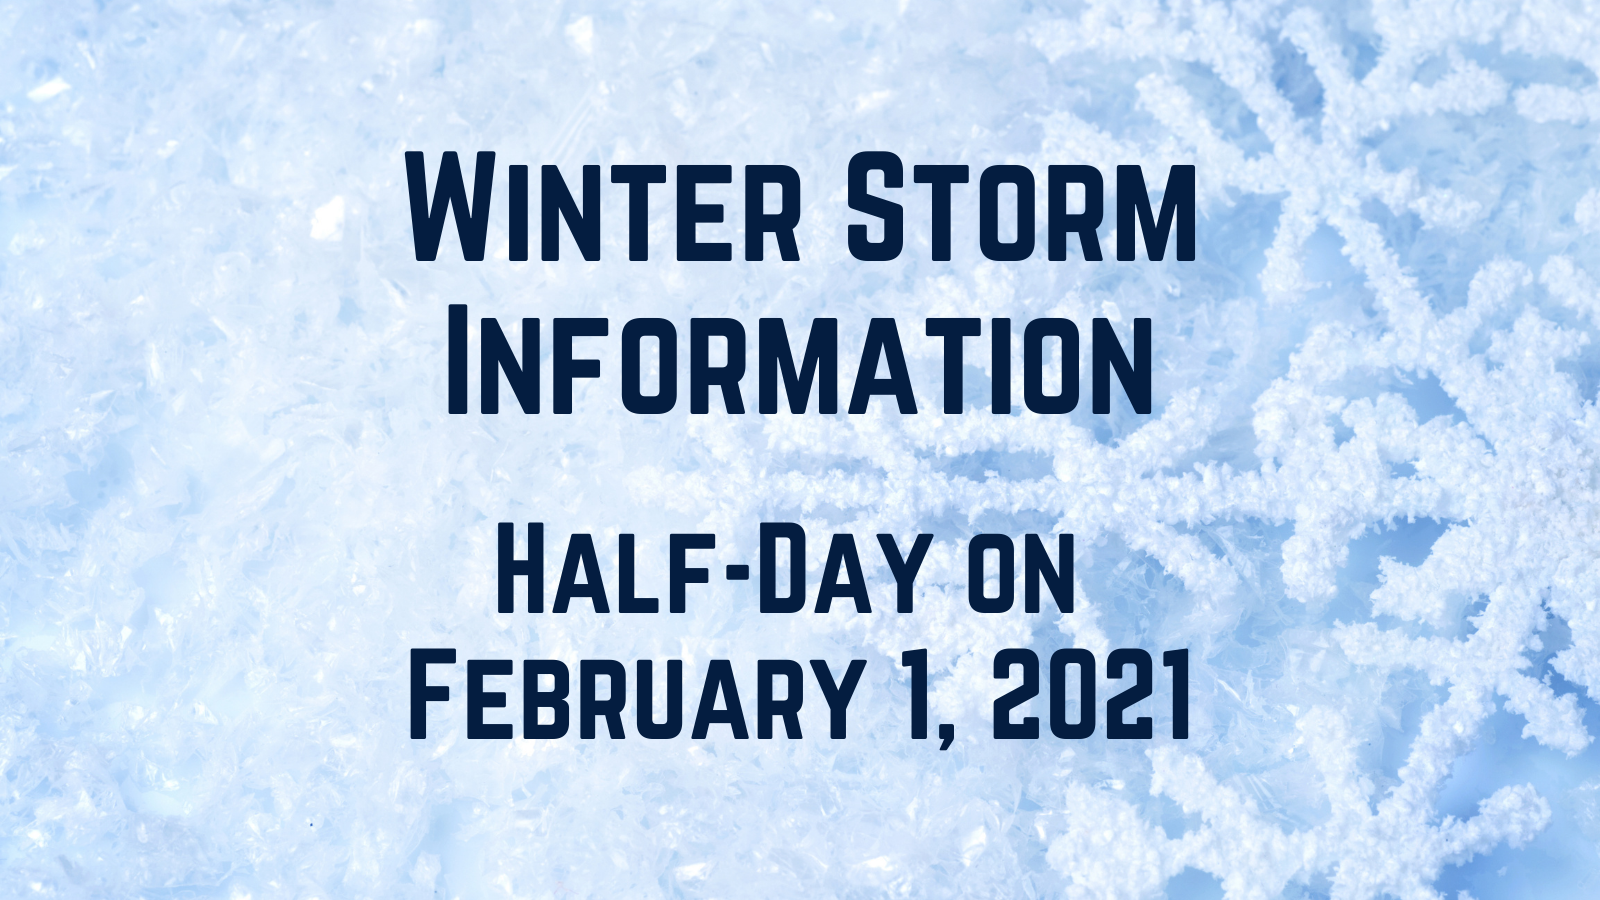 Franklin Public Schools: Half-day for Monday, Feb 1 - Stay tuned for Tuesday decision (weather dependent)